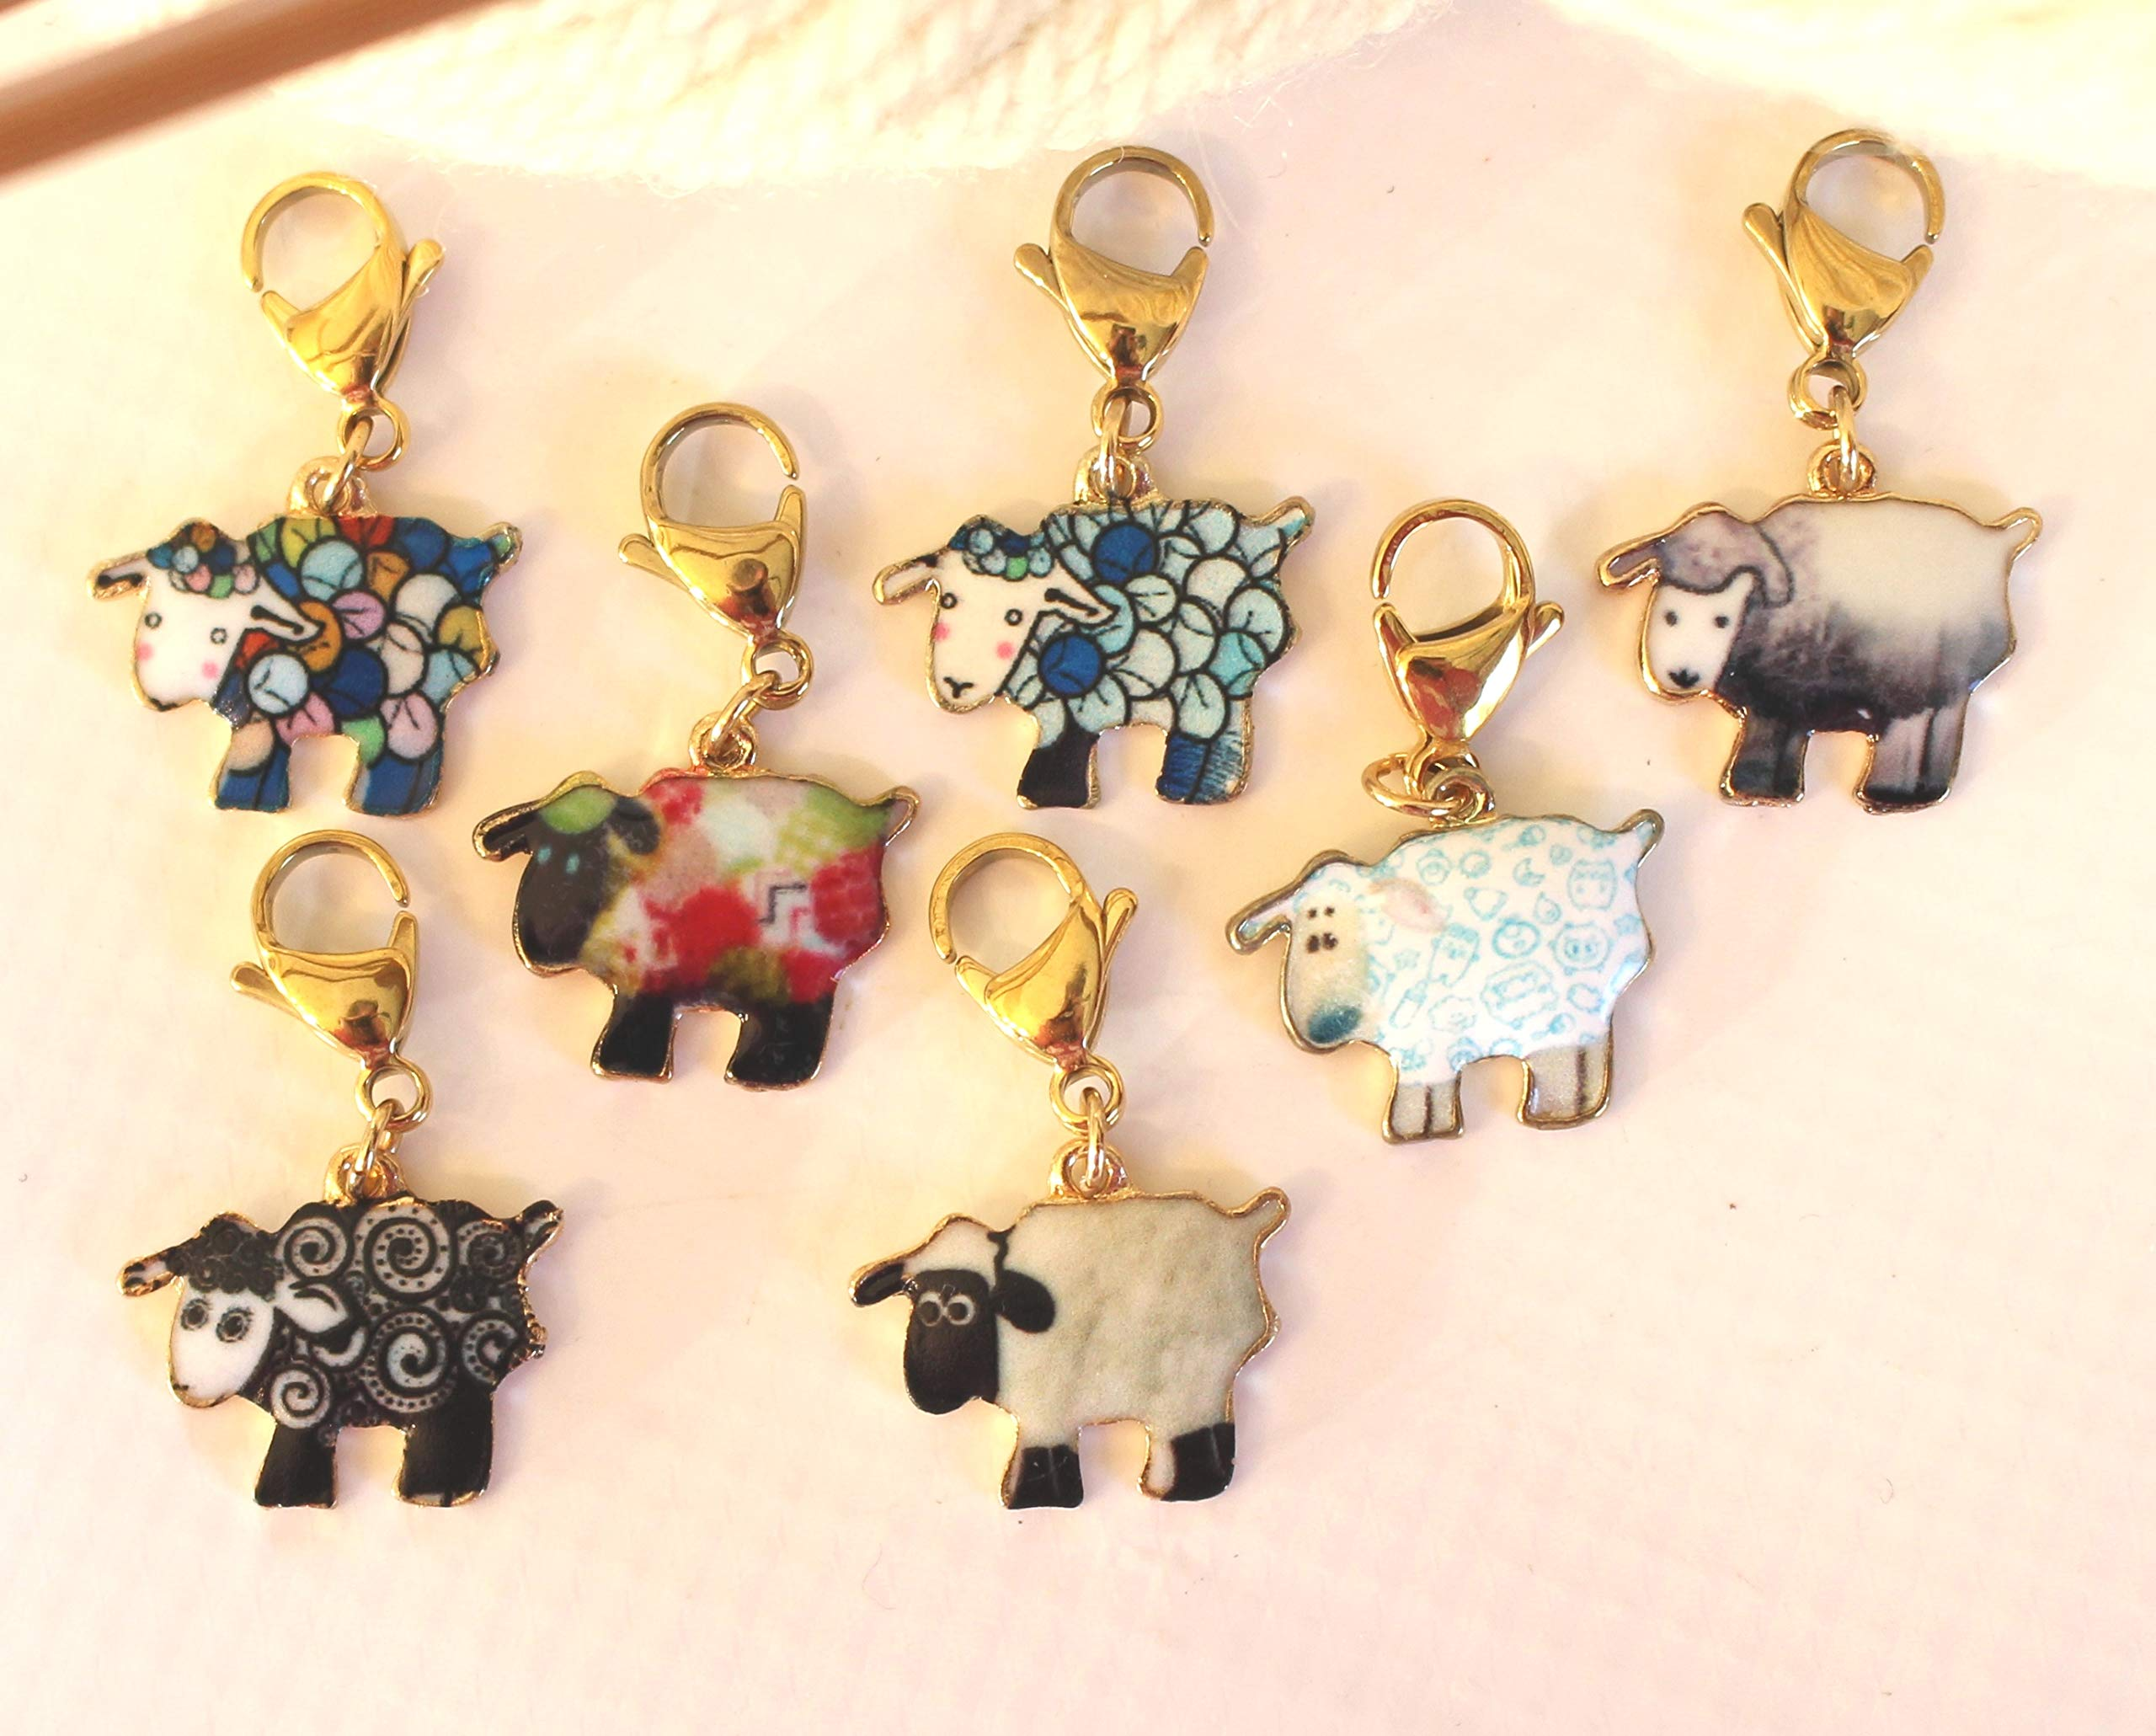 Set of 7 Sheep Stitch Markers for Removeable Knitting Knit Pattern Crochet Reminder Stitchmarker Pattern Helper Knitter Gift Clasp